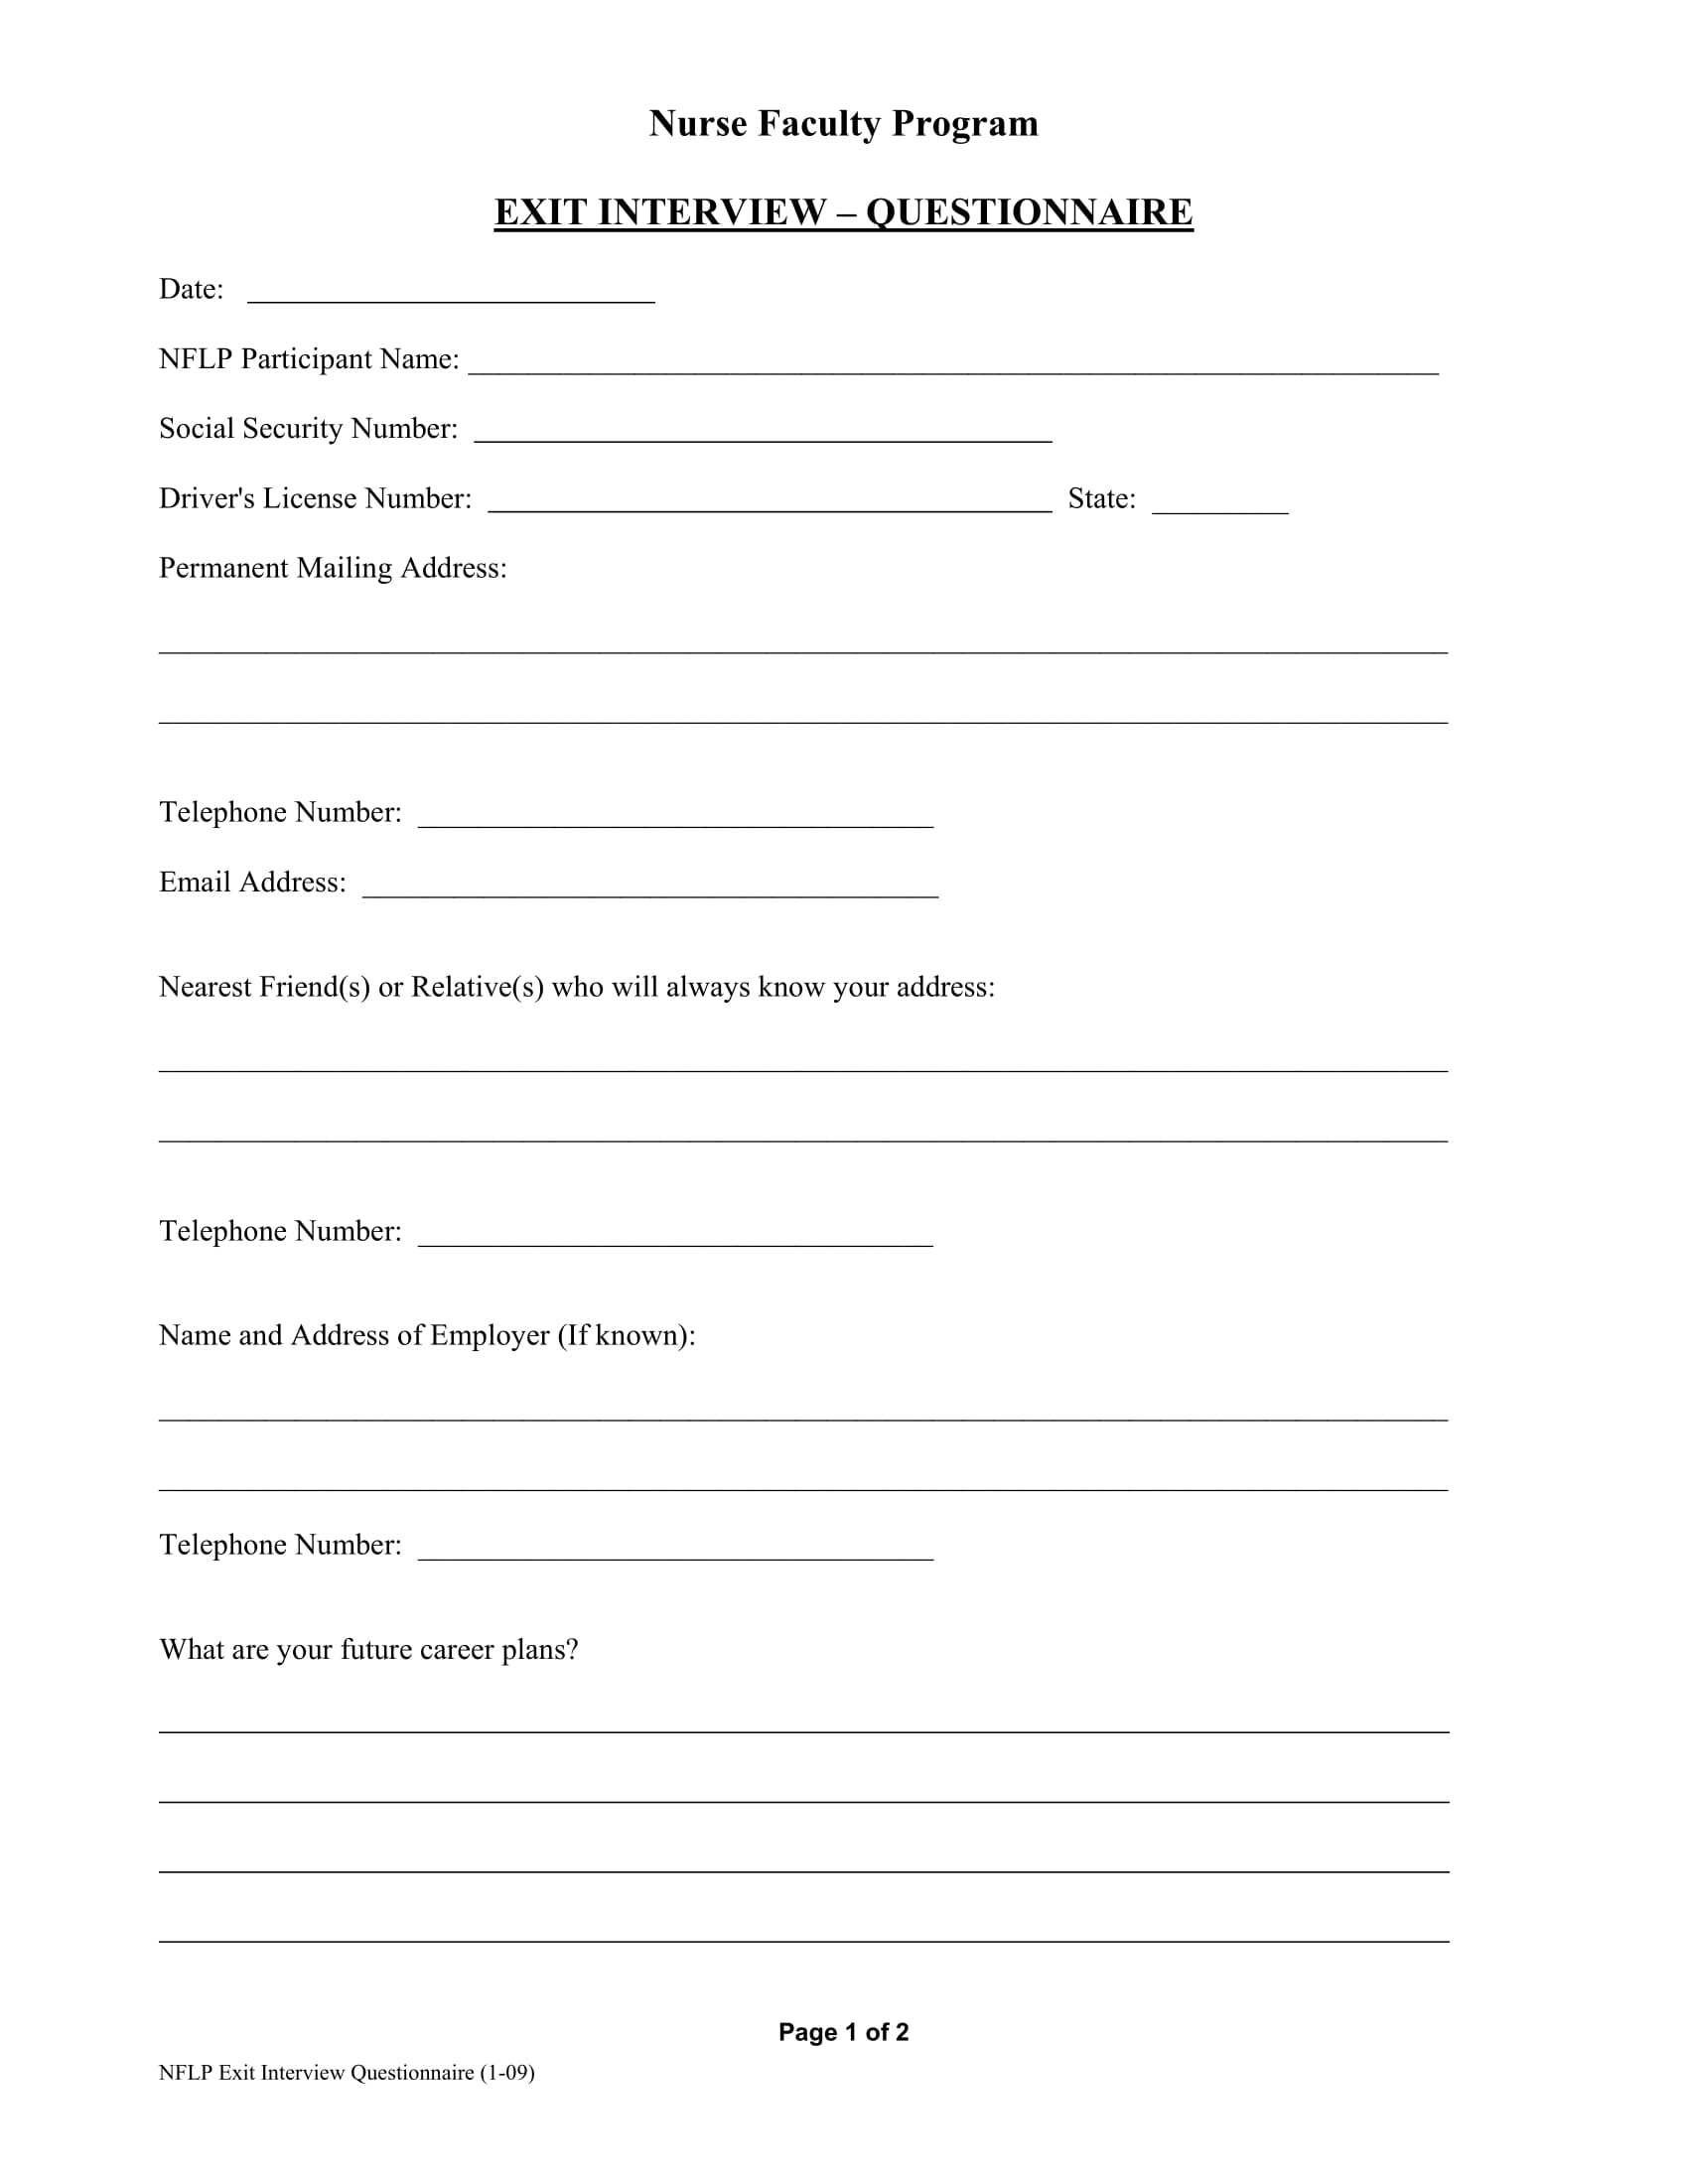 nurse faculty exit interview questionnaire example